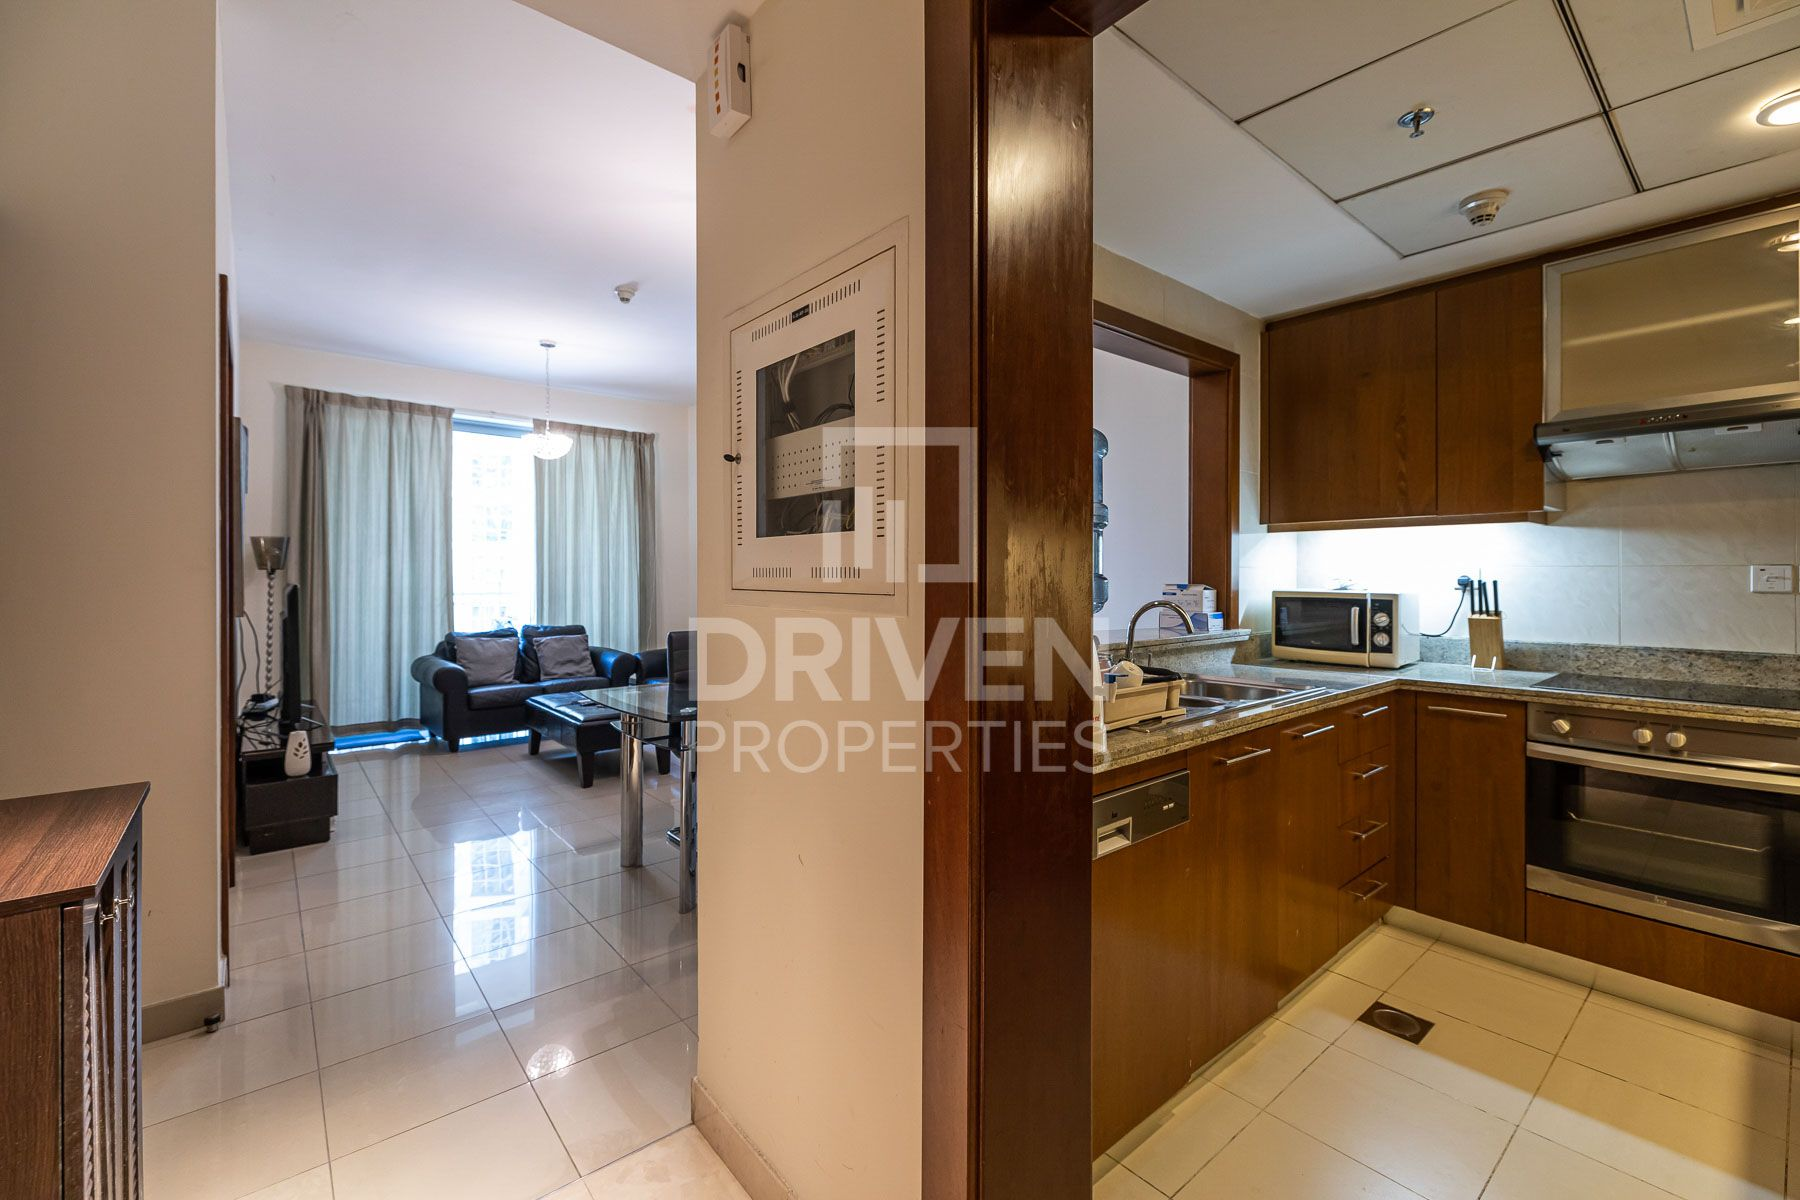 Apartment for Rent in Standpoint Tower 1 - Downtown Dubai